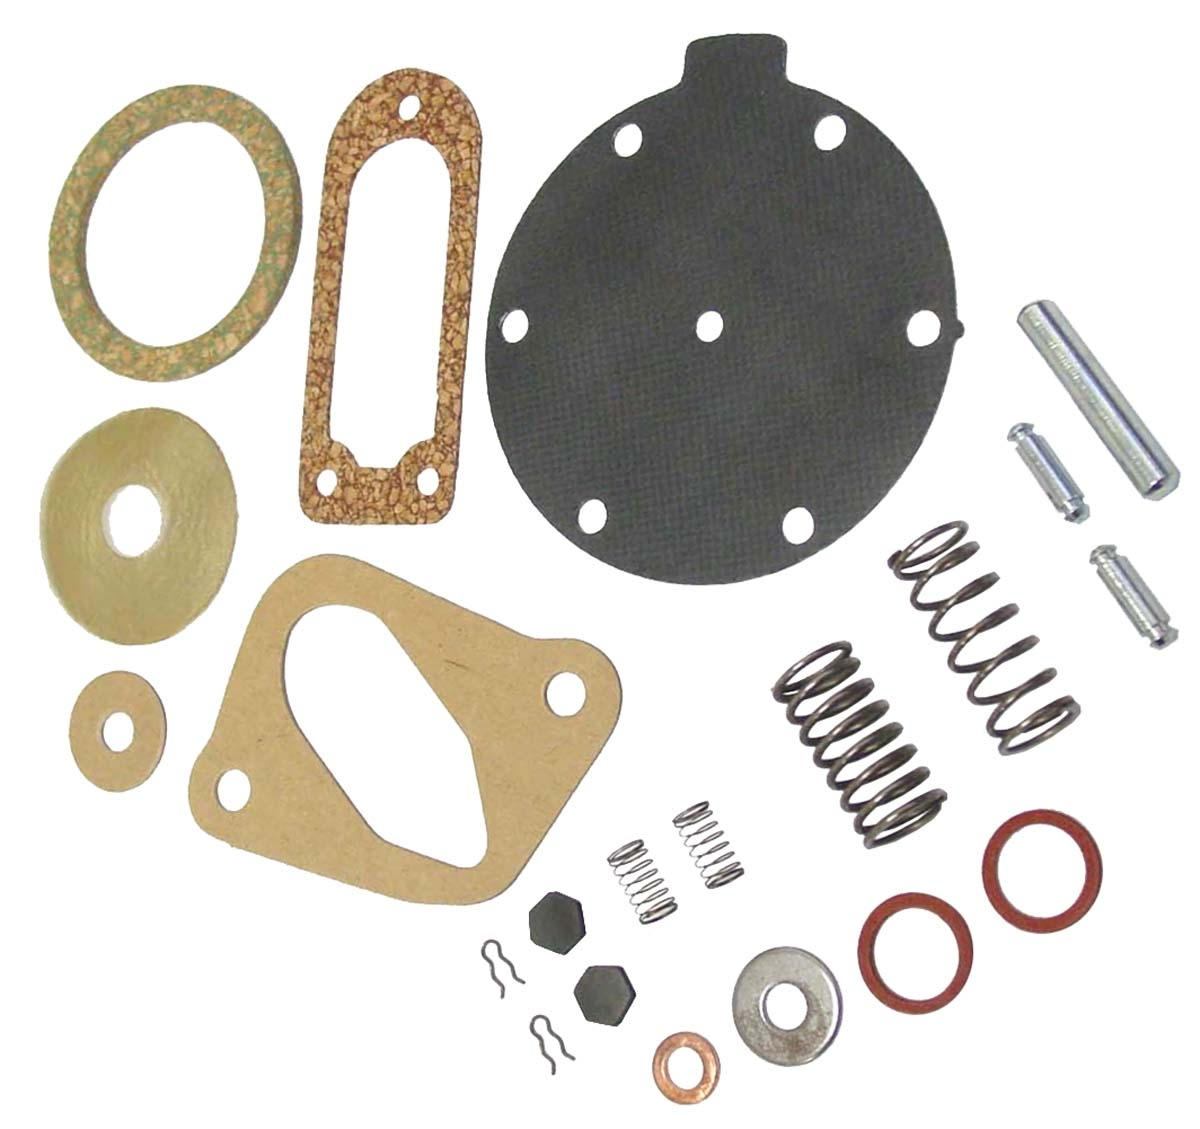 FUEL PUMP REPAIR KIT, COMPLETE -  Farmall F12, F14, I12, O12, O14, W12, W14